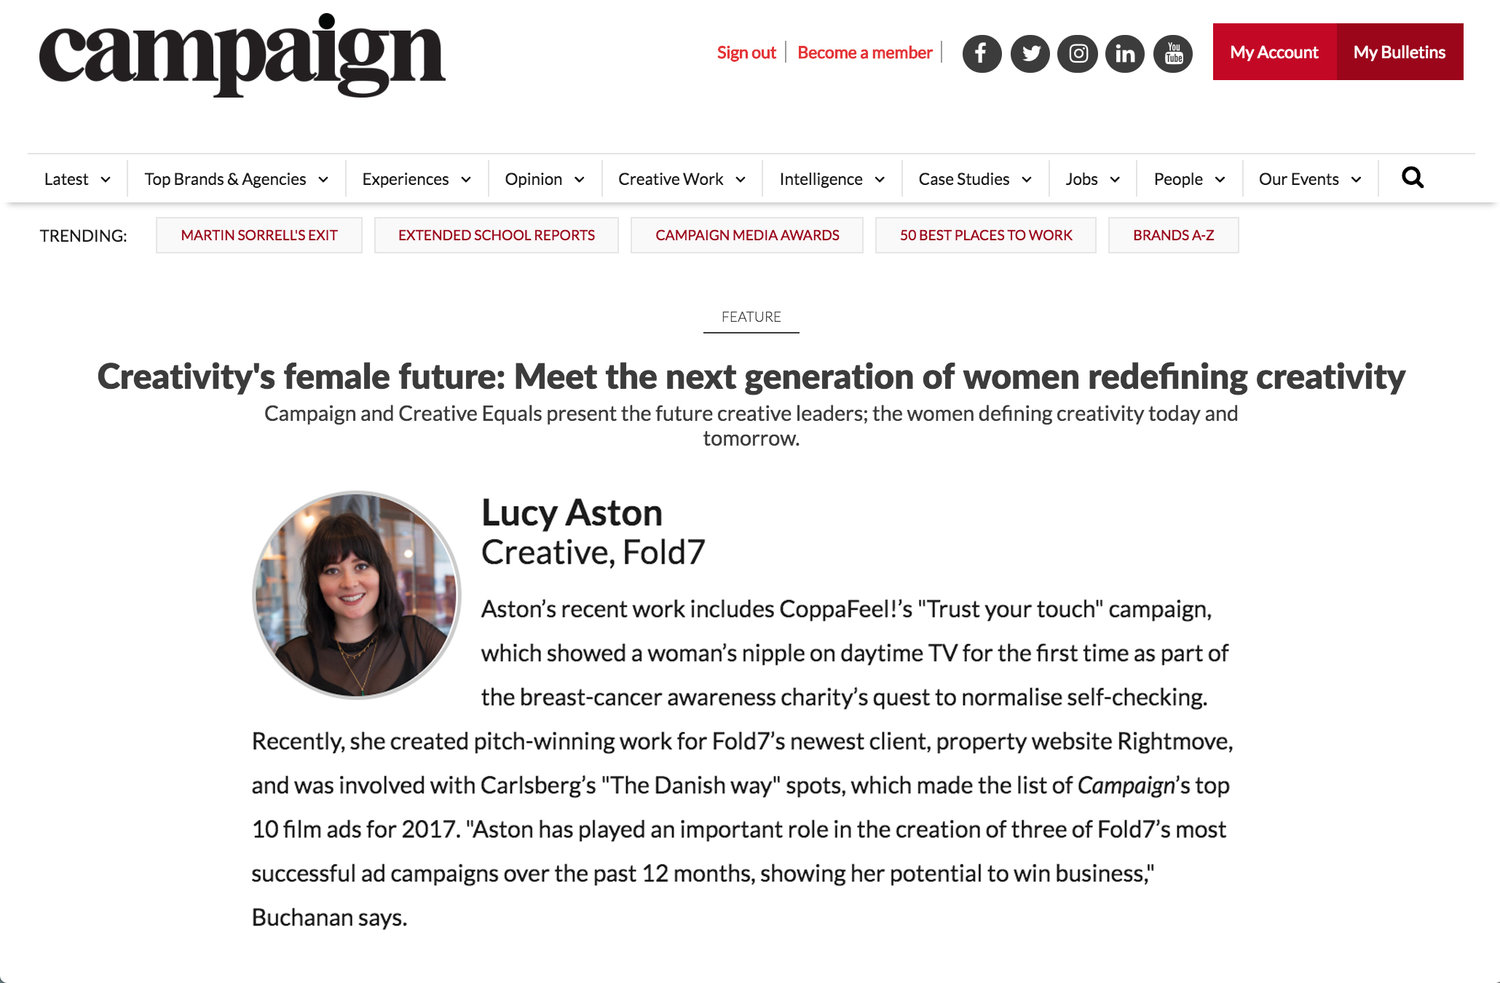 Named by Campaign magazine as Creativity's Female Future - Campaign and Creative Equals present the future creative leaders; the women defining creativity today and tomorrow. Out of 170 entrants right up to CD level, I made it onto the shortlist of women leading the way in creative roles. Here's what they had to say about me;